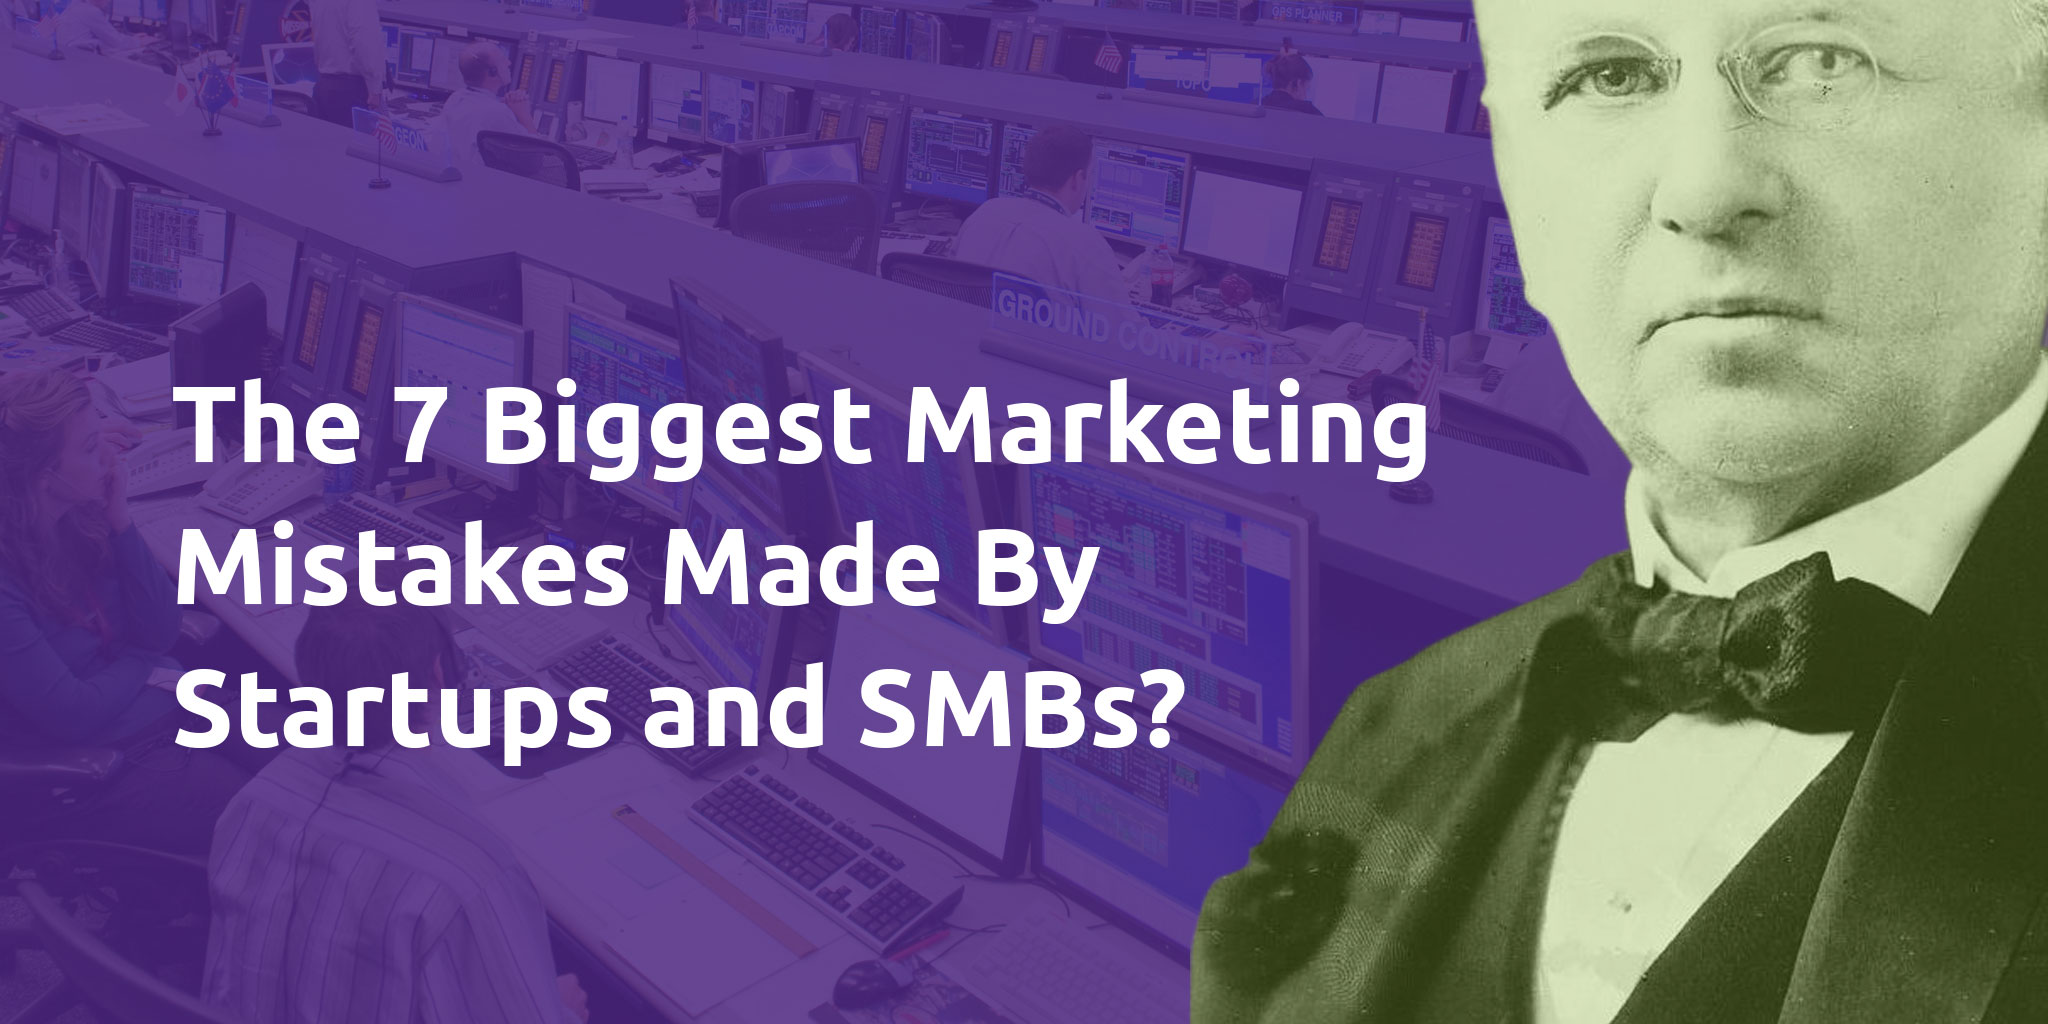 The 7 Biggest Marketing Mistakes Made By Startups and SMEs?